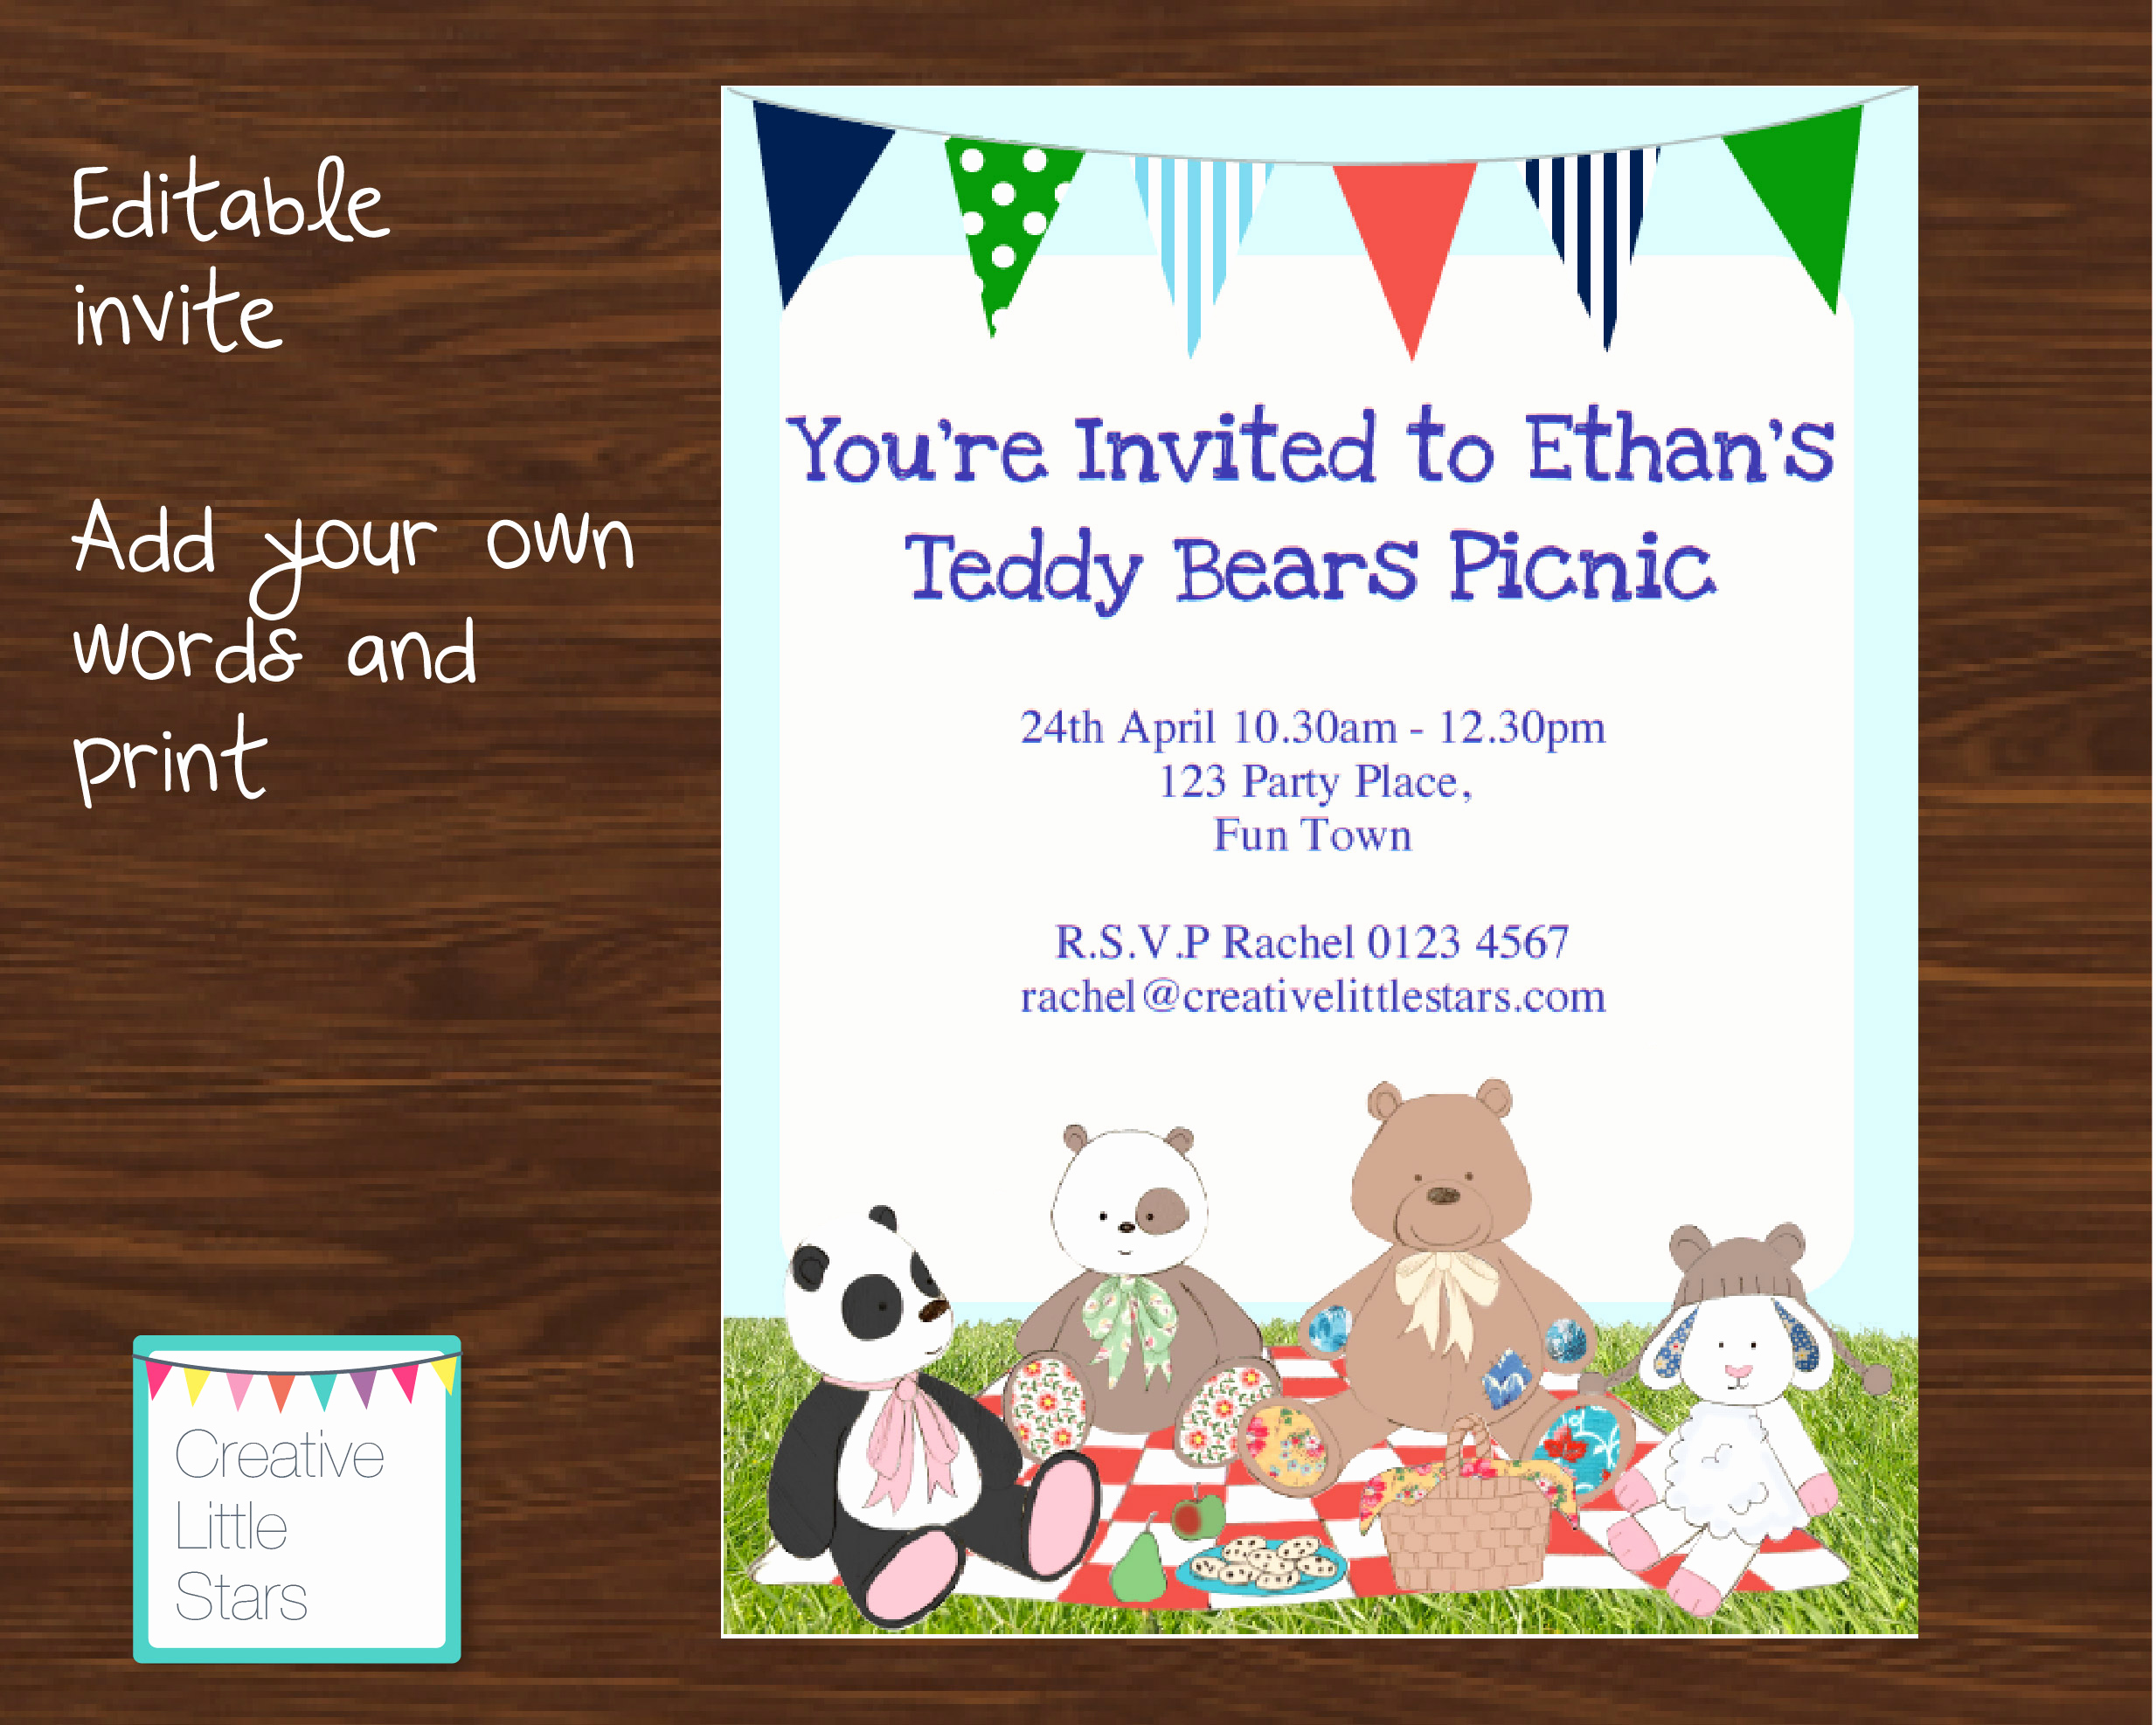 Teddy Bears Picnic Invitation Inspirational Printable Teddy Bears Picnic Invitation Blue Creative